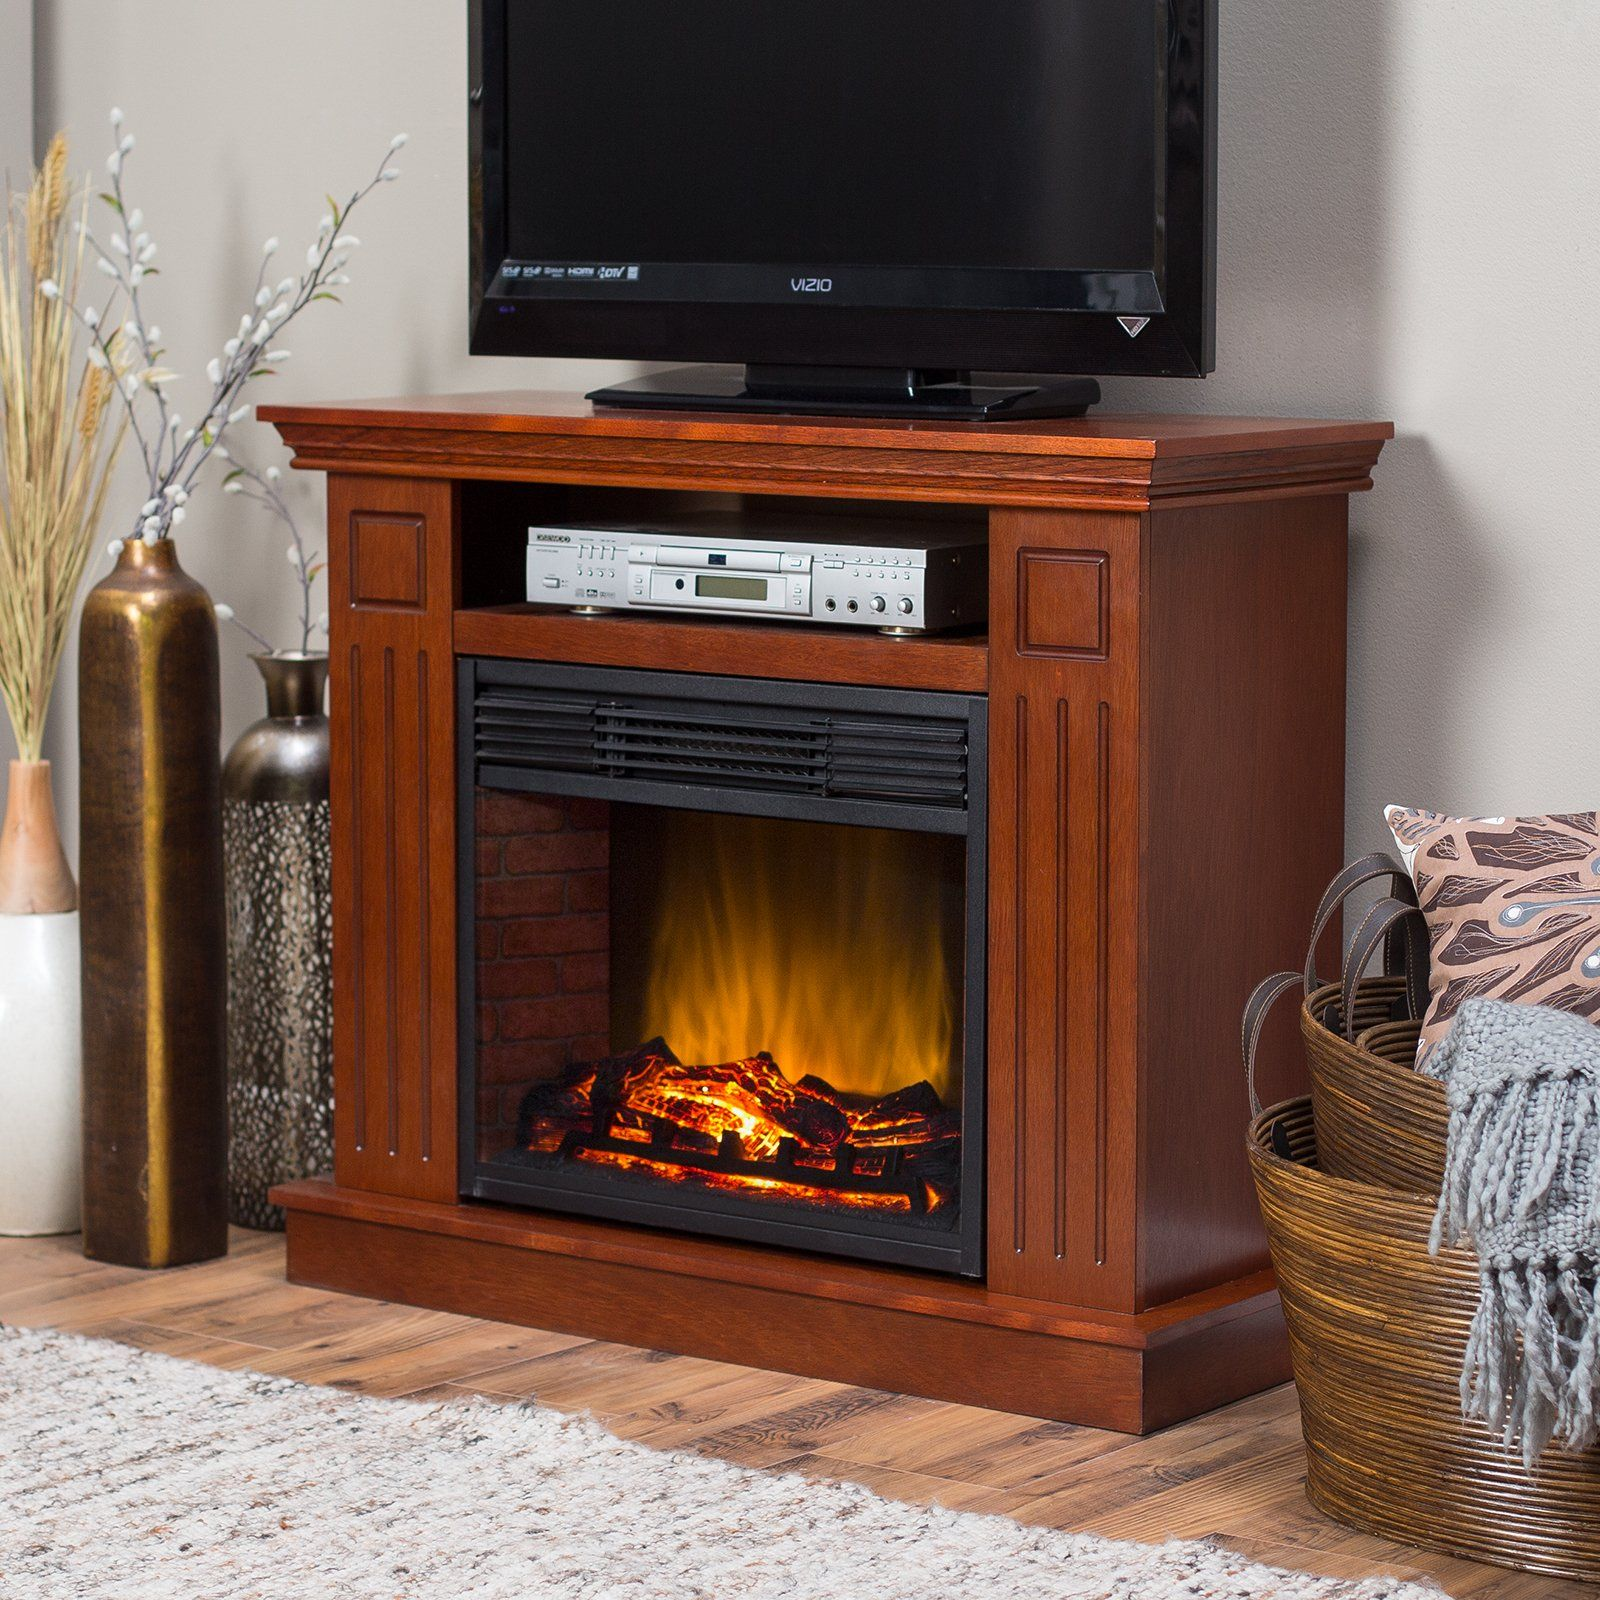 Stunning Ceramic Infrared Fireplace -infrared fireplace costco ...